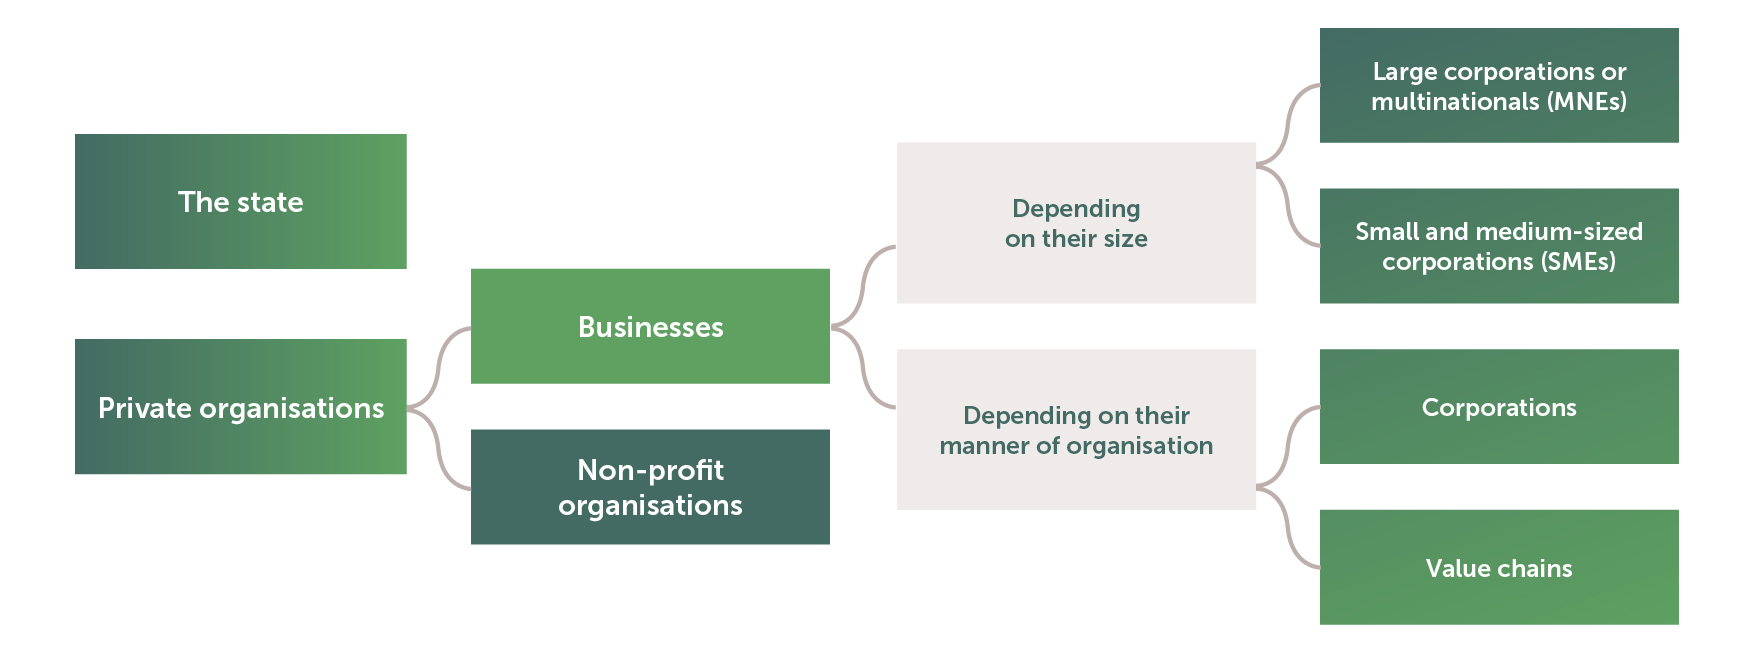 The second group of tools indicates which organisations can use the toolbox - that is, the state and private organisations. Private organisations are divided into businesses and non-profit organisations. Businesses are further classified: first, depending on their size, into large corporations or multinationals and small and medium-sized corporations; second, depending on their manner of organisation, into corporations and value chains.